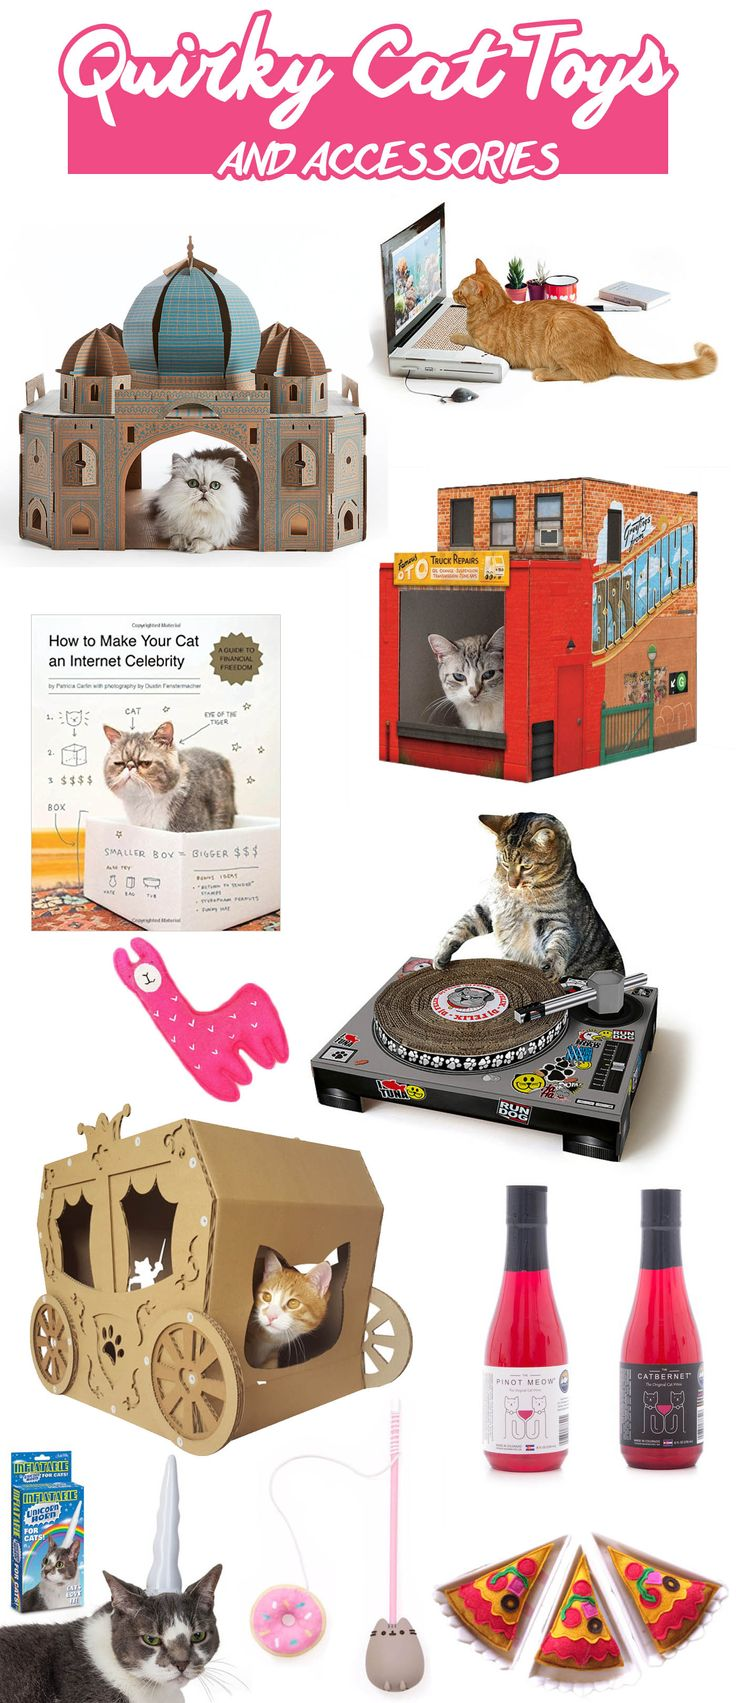 Quirky Cats Toys and unique accessories for cats. | Modern Cat Supplies that Don't Make Me Cry